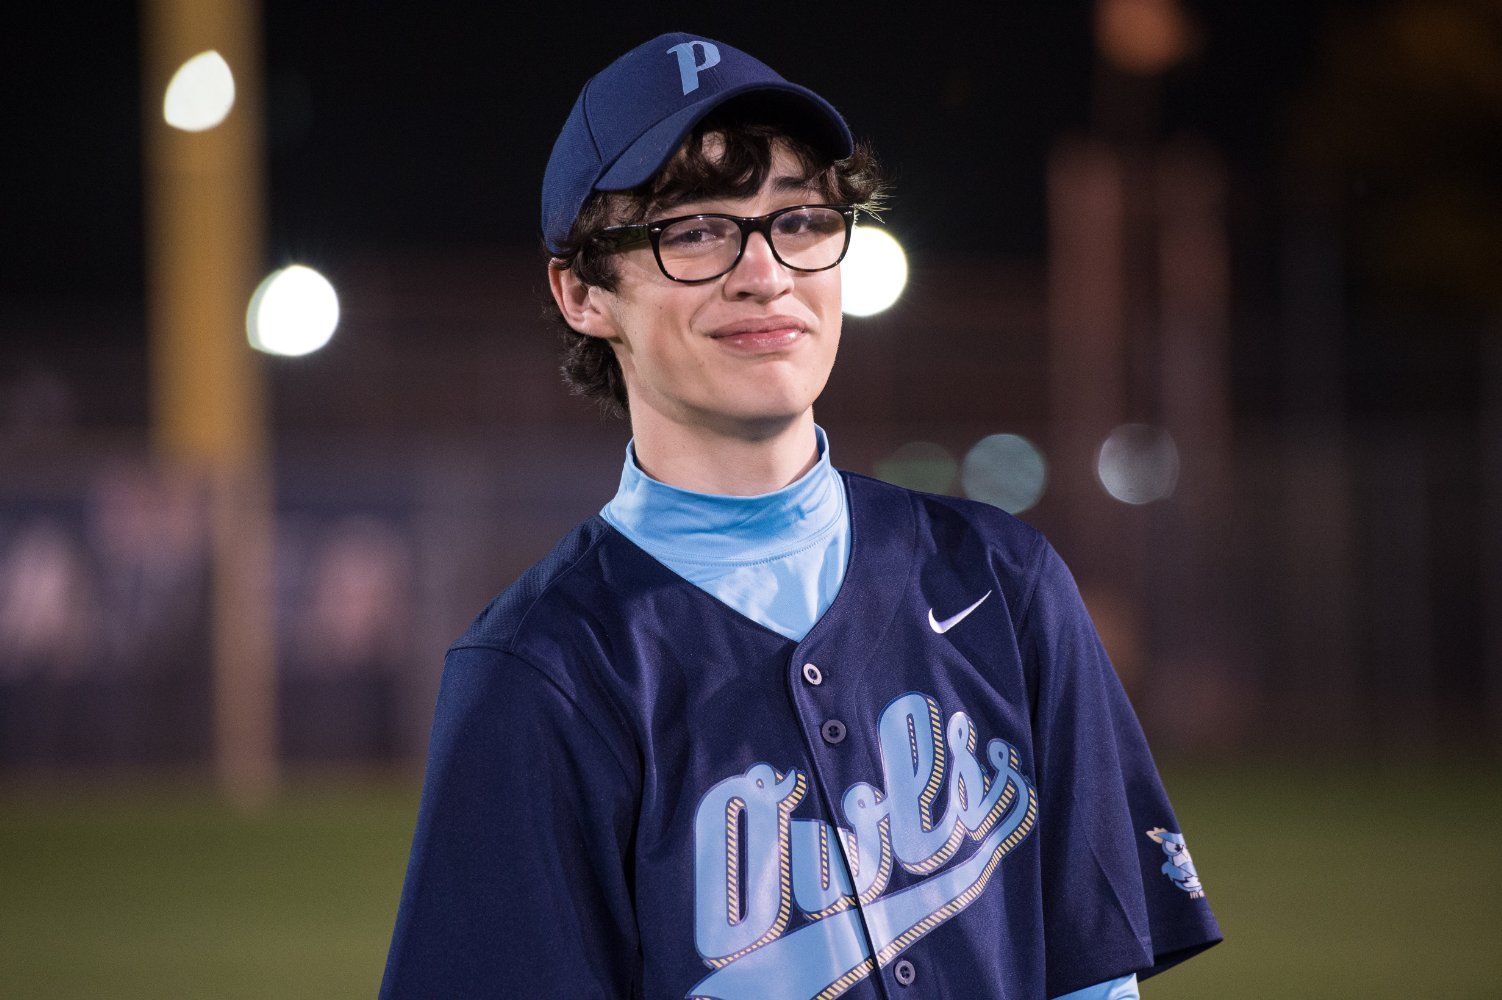 joey bragg and audrey whitbyjoey bragg now, joey bragg instagram, joey bragg and audrey whitby relationship, joey bragg age, joey bragg thundermans, joey bragg girlfriend, joey bragg, joey bragg height, joey bragg and audrey whitby, joey bragg father of the year, joey bragg movies, joey bragg 2019, joey bragg criminal minds, joey bragg 2018, joey bragg parents, joey bragg net worth, joey bragg liv and maddie, joey bragg stand up, joey bragg imdb, joey bragg movies and tv shows